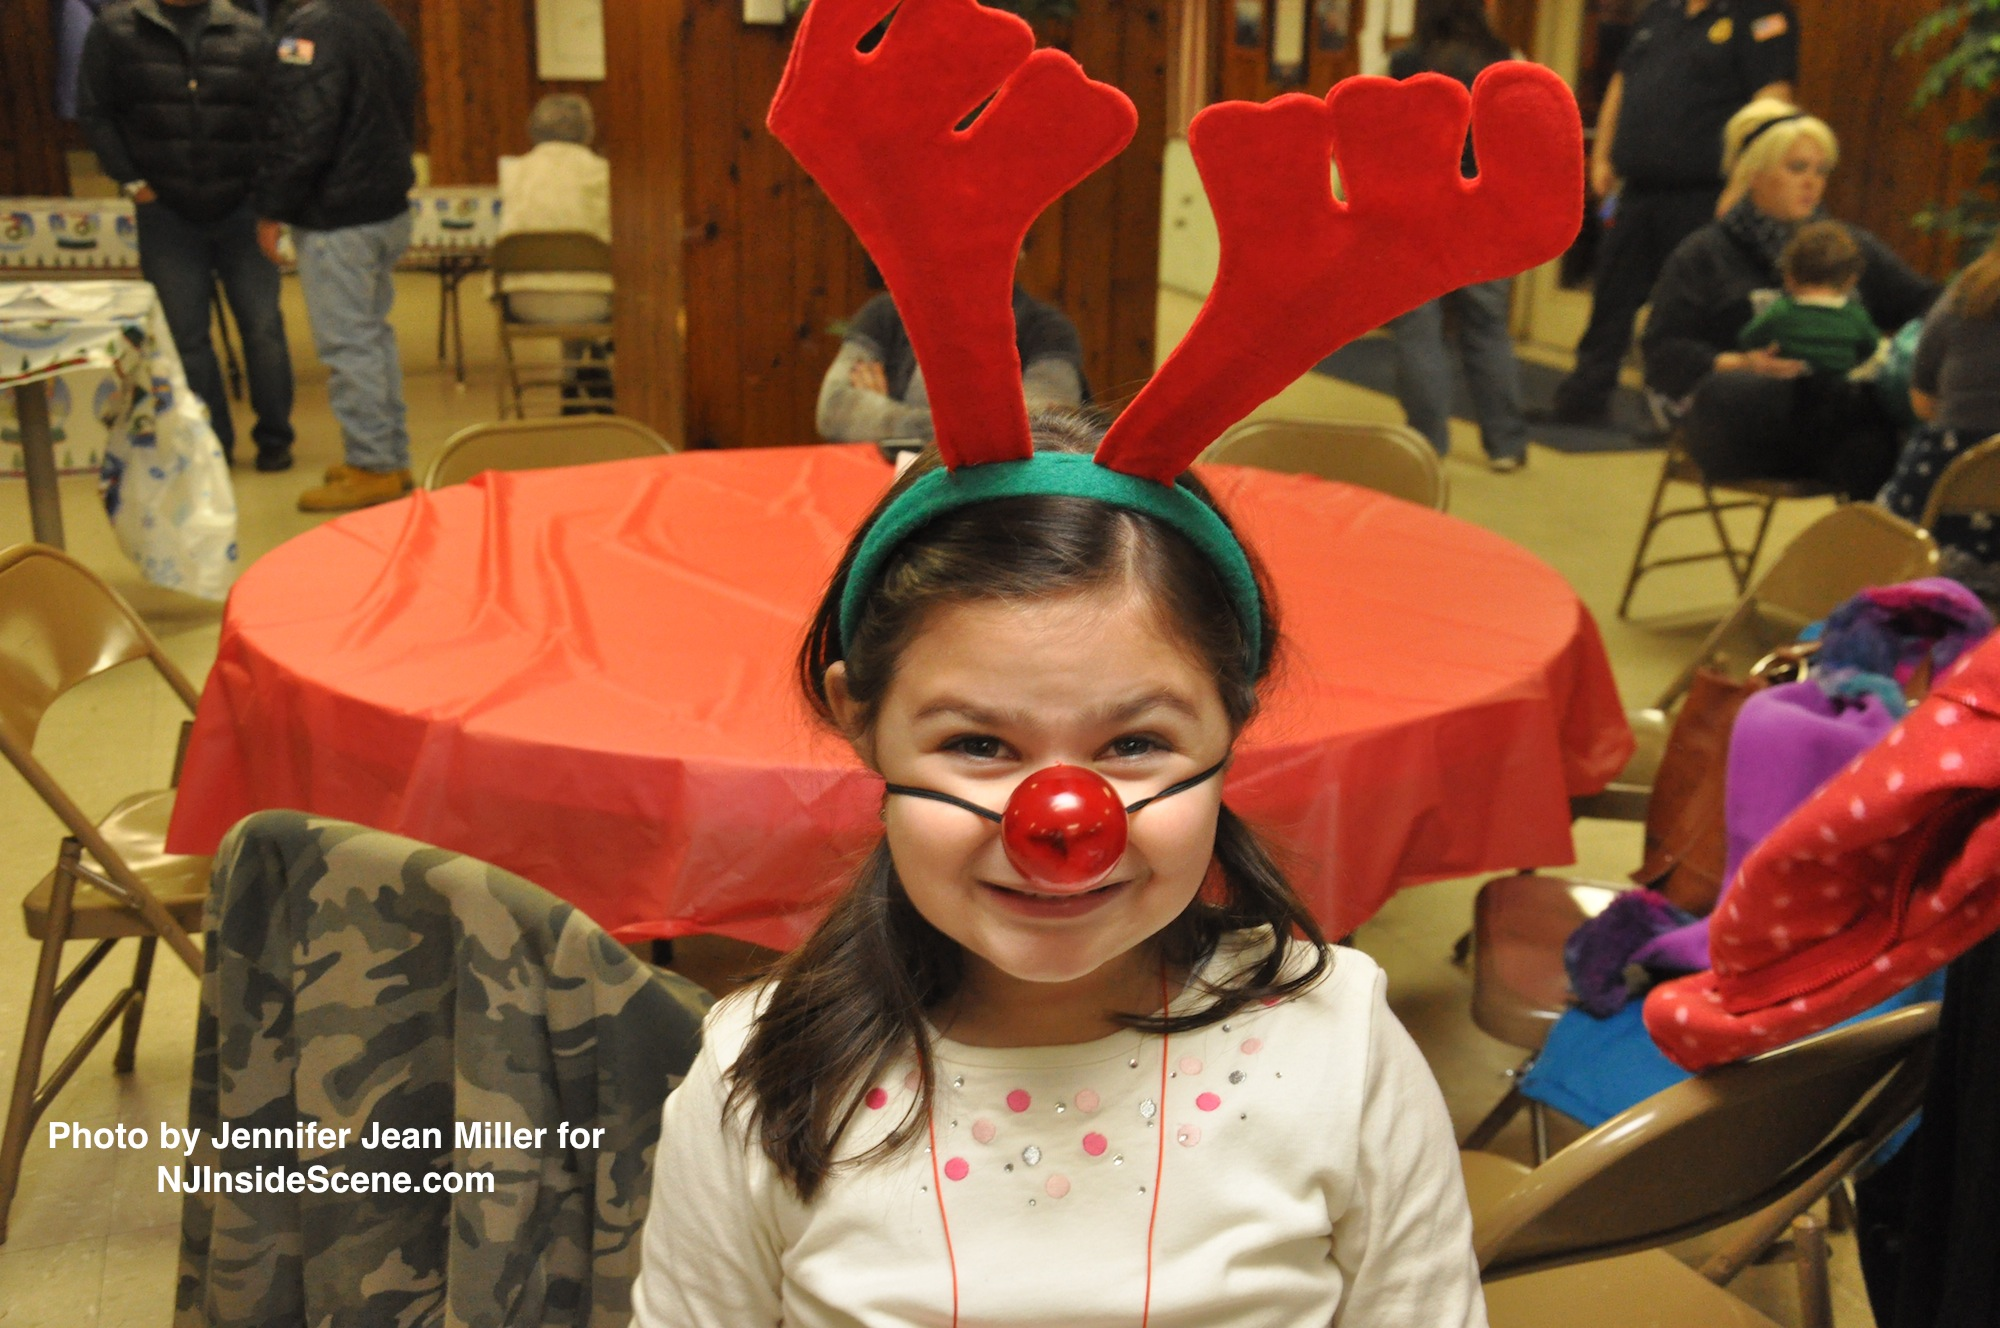 Brianna Kash shows her holiday spirit with her Rudolph nose and antlers.